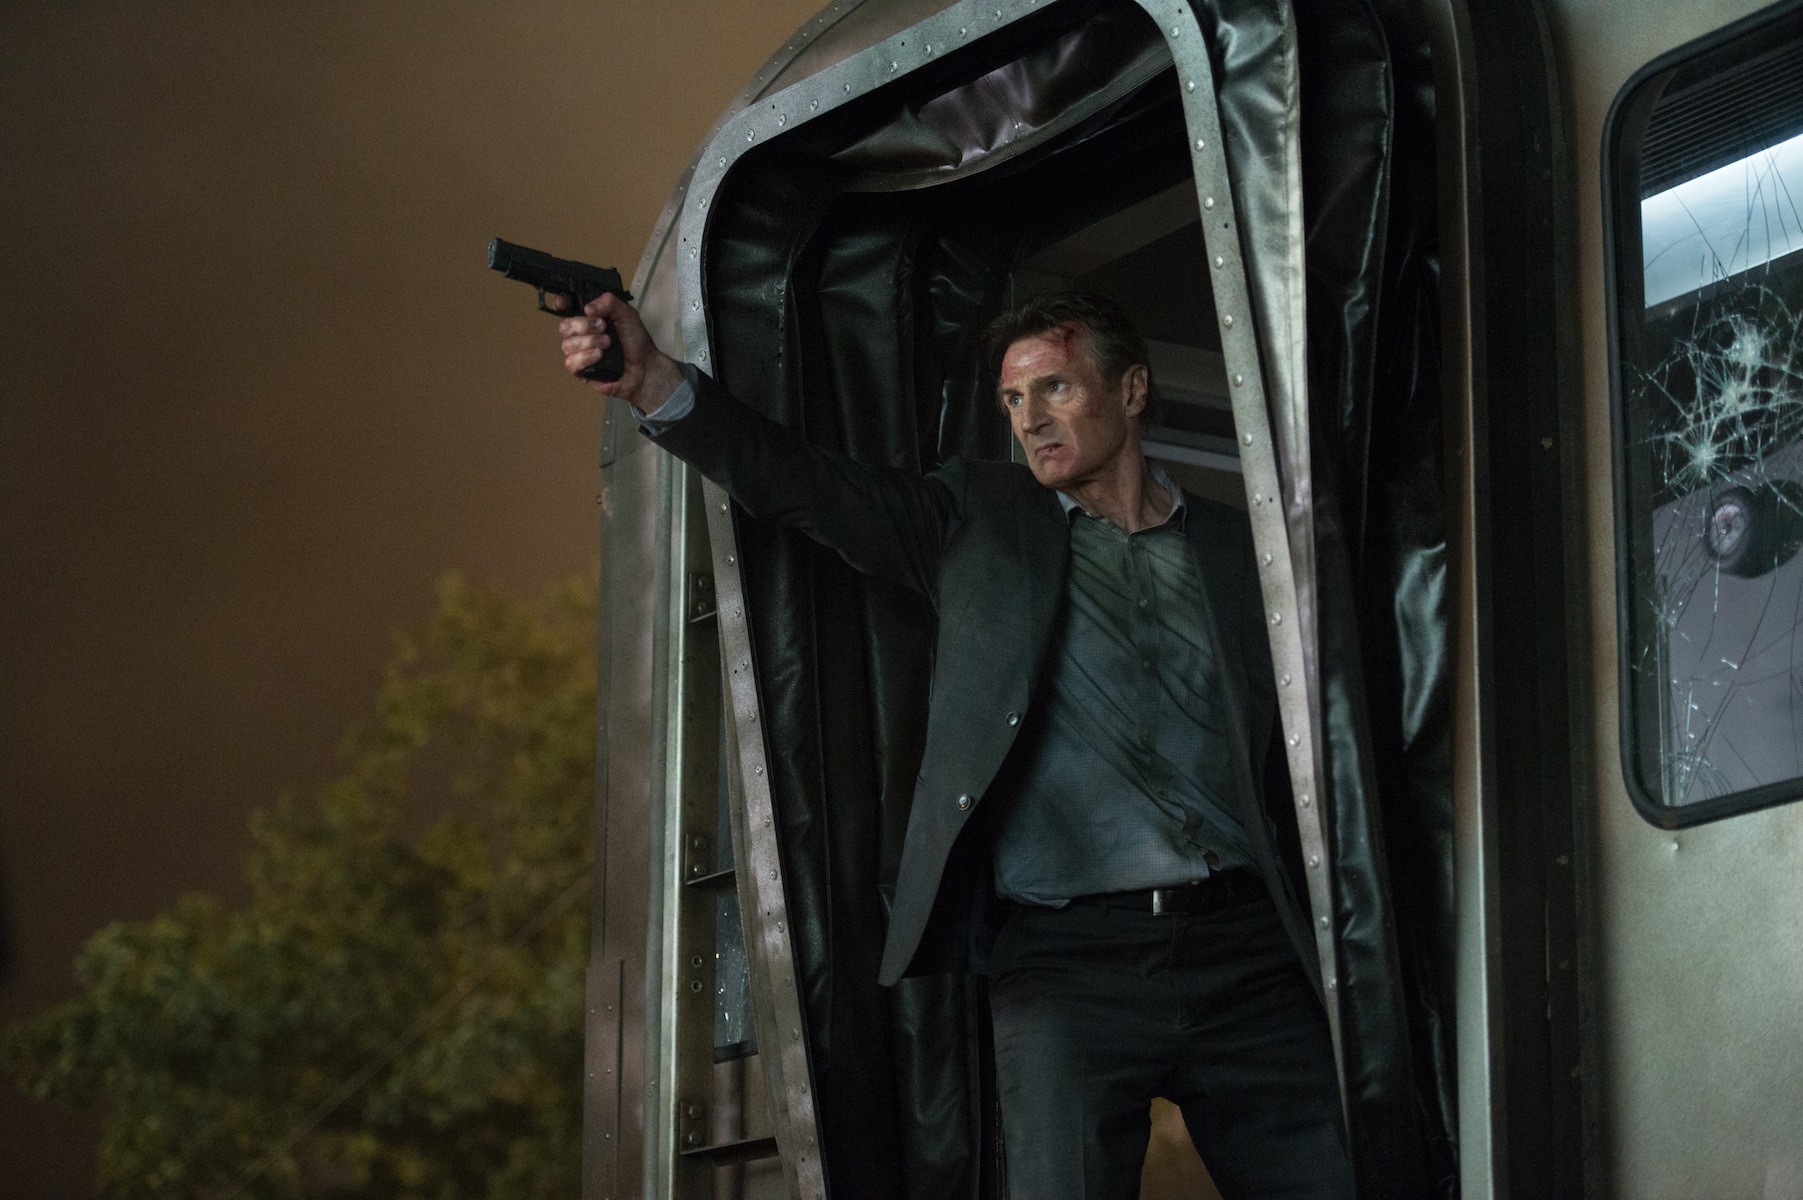 Liam Neeson as Michael in The Commuter.